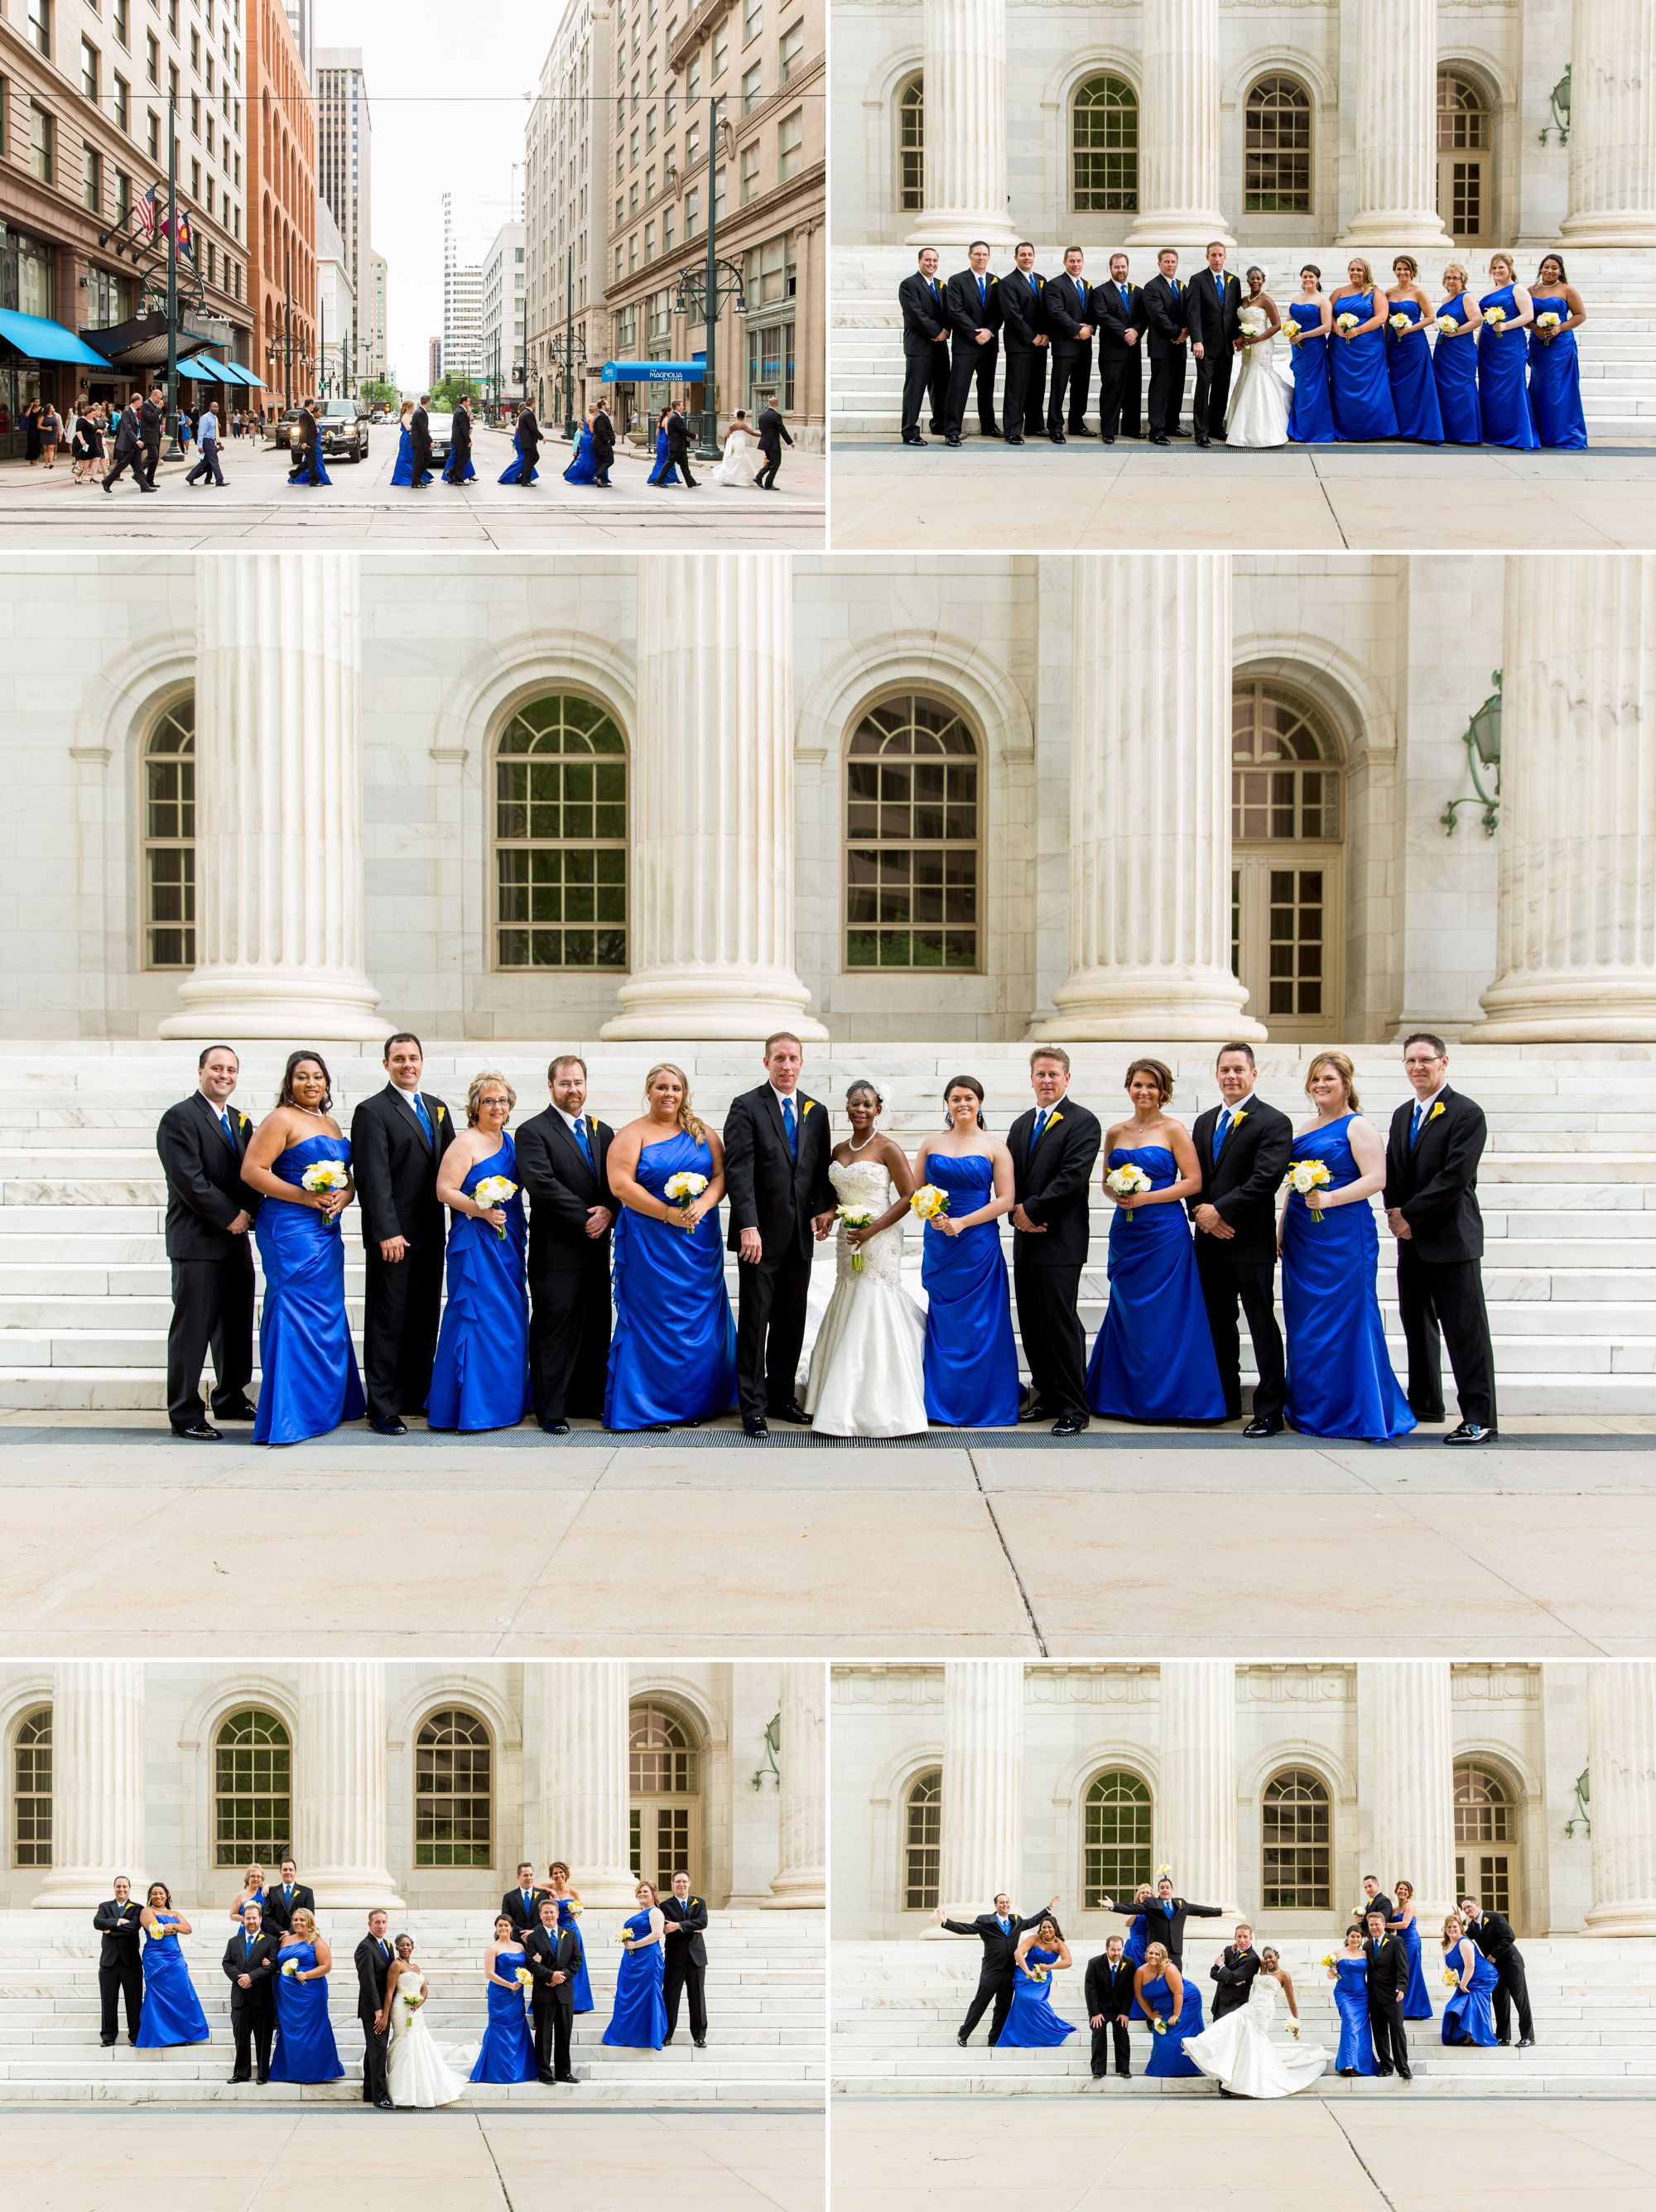 Friends forever!  Bridesmaids are wearing gorgeous blue gowns with a combination of white and yellow flowers as accents!